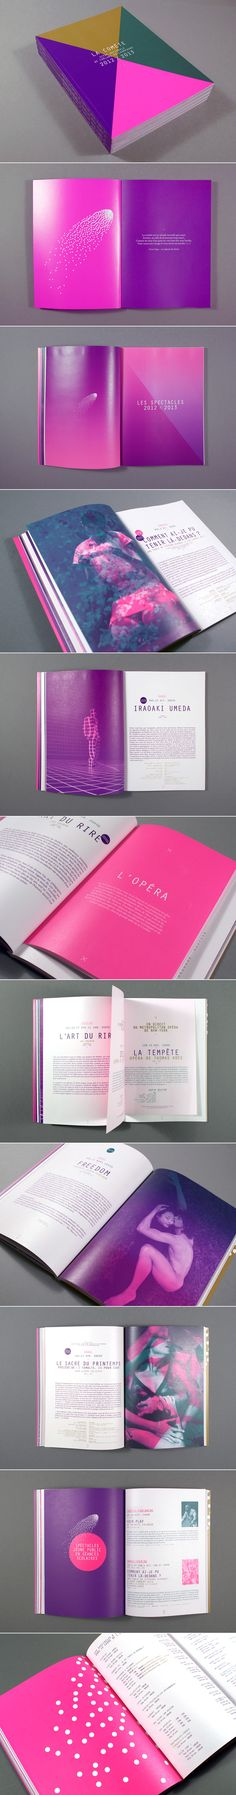 La comète - wonderful use of bright colours in a professional way